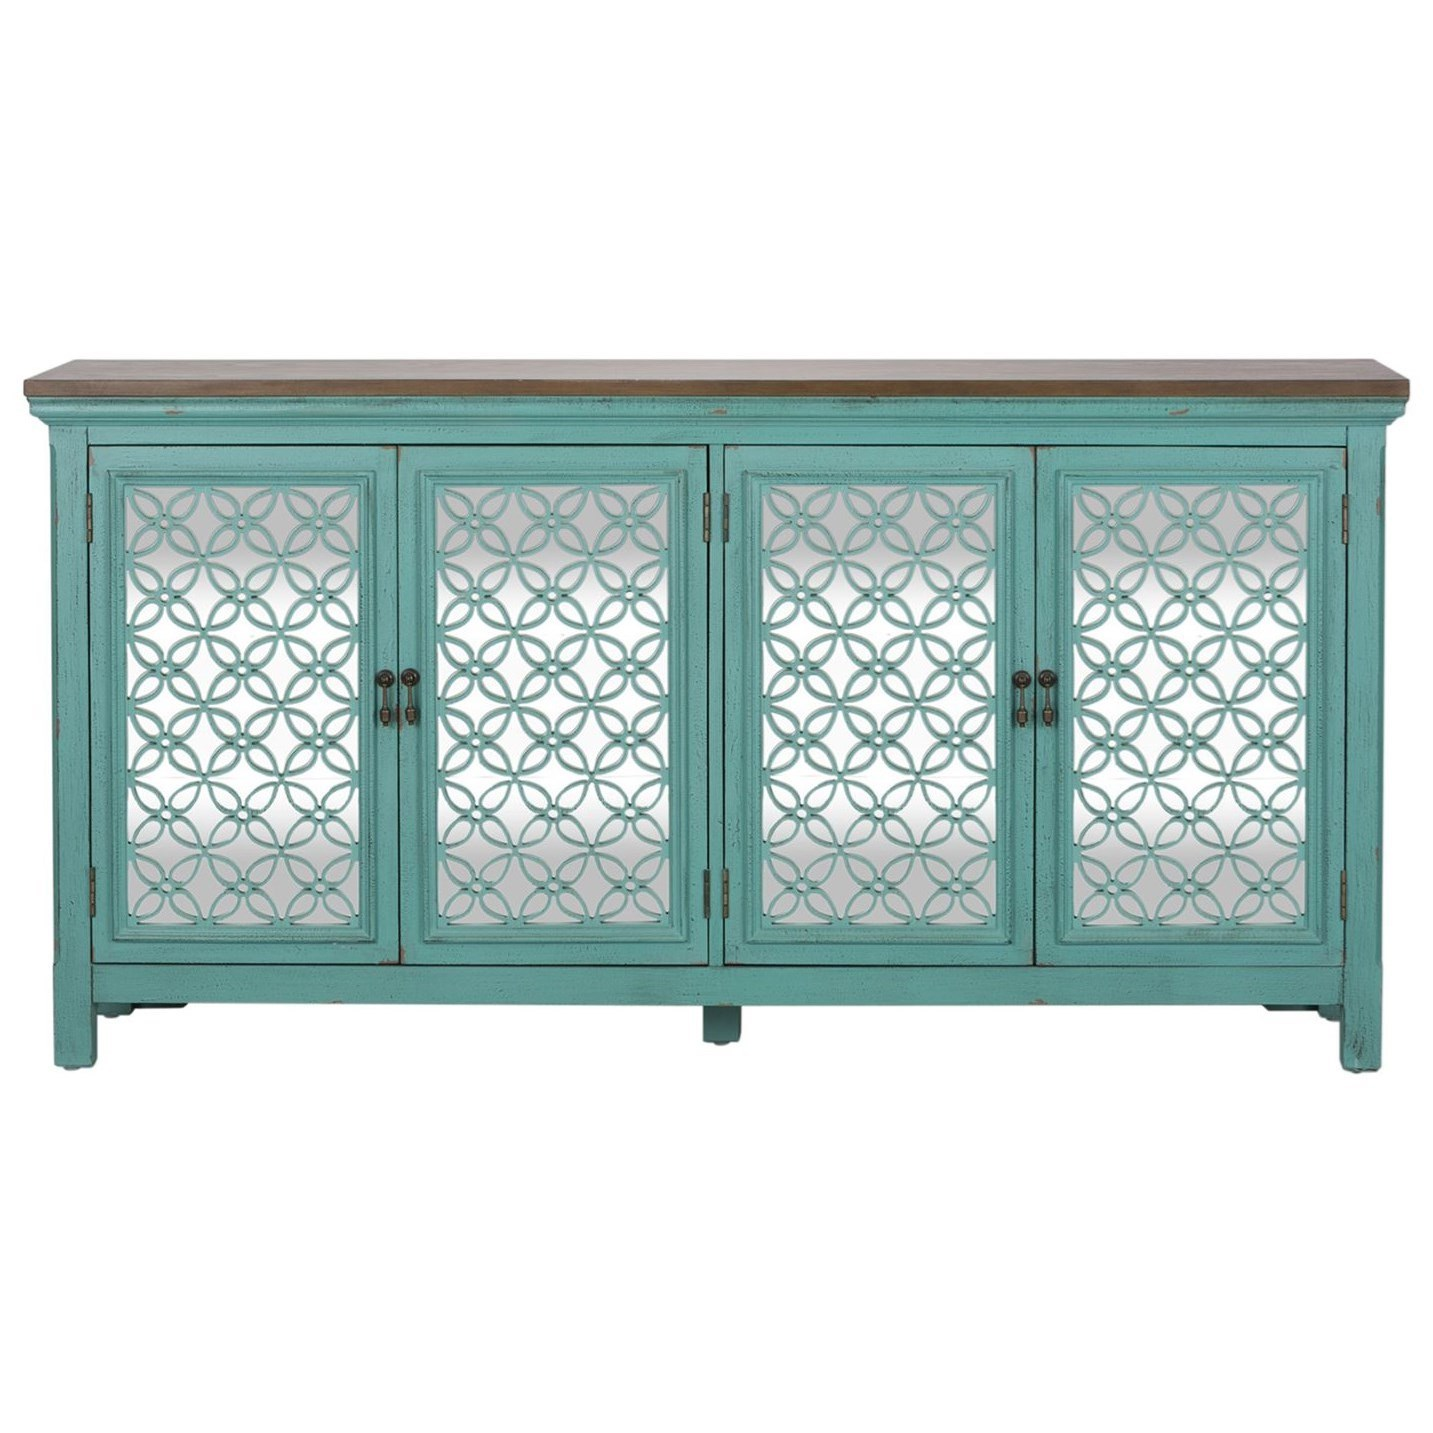 Kensington 4 Door Accent Chest by Sarah Randolph Designs at Virginia Furniture Market